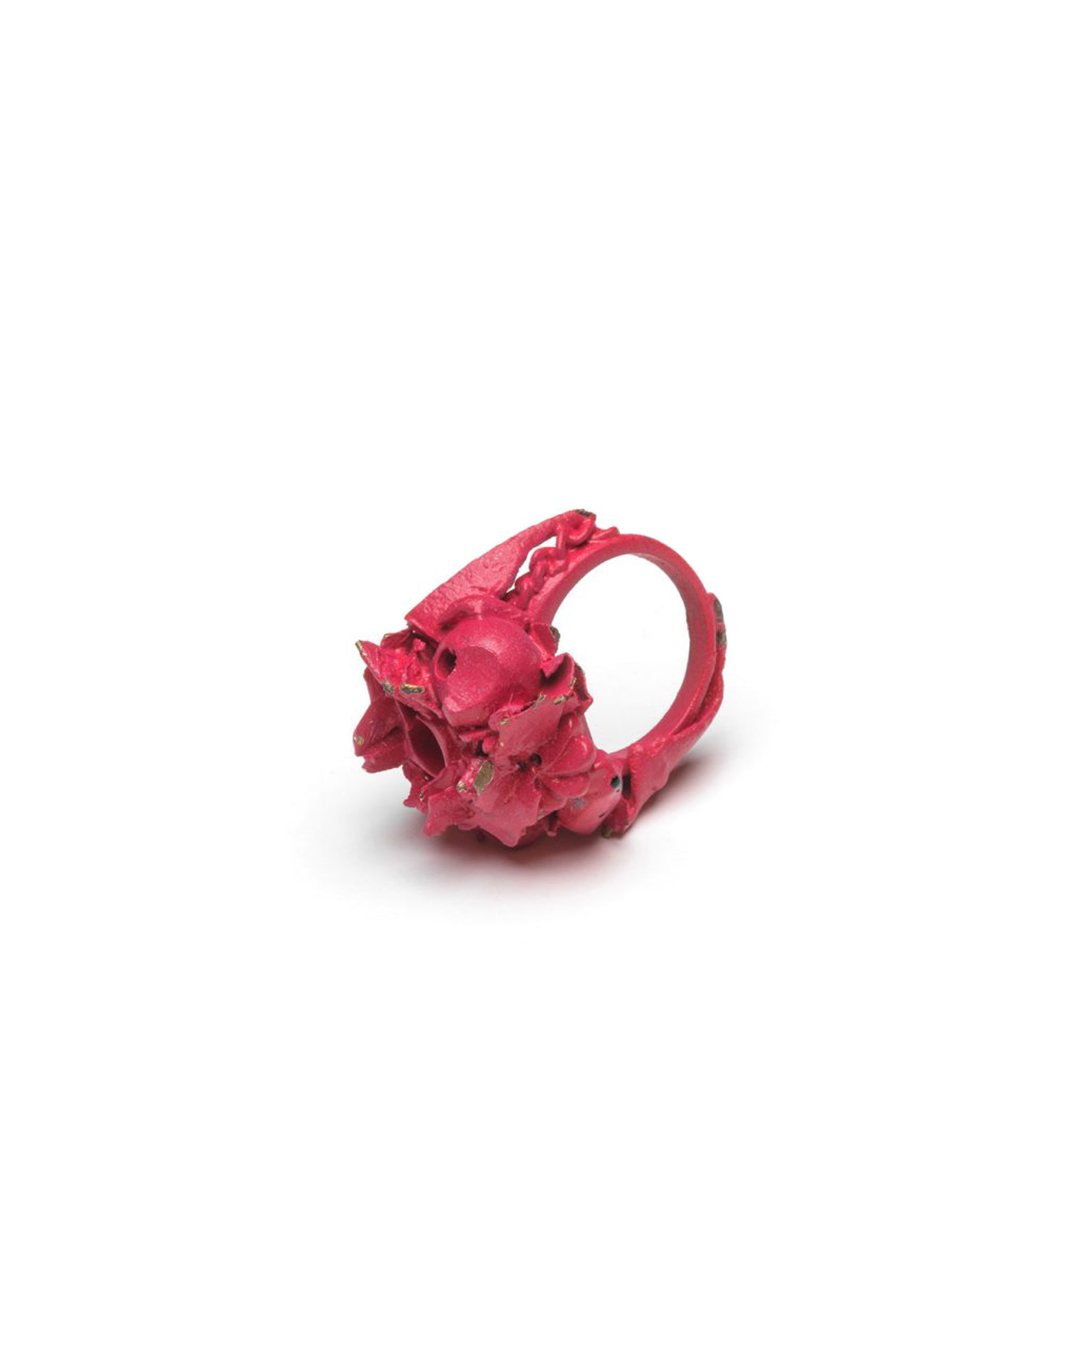 Doron Taubenfeld, untitled, 2009, ring; metal, paint, 35 x 30 x 25 mm, €350